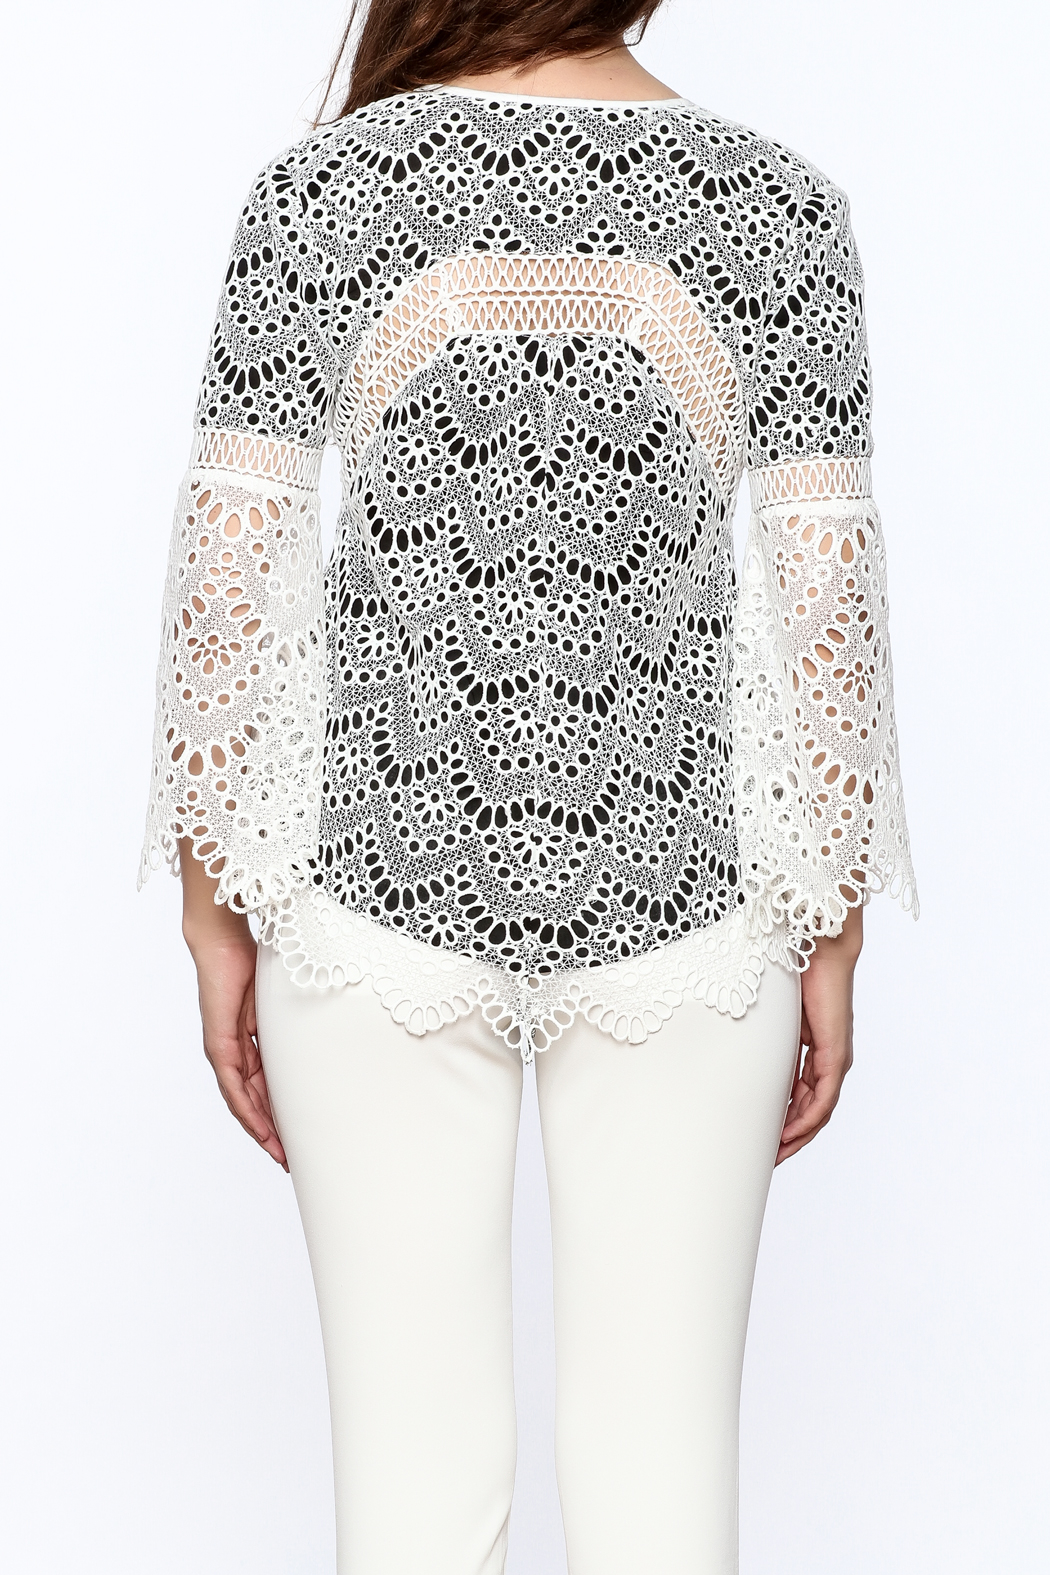 KAS New York Semi Lined Lace Top - Back Cropped Image